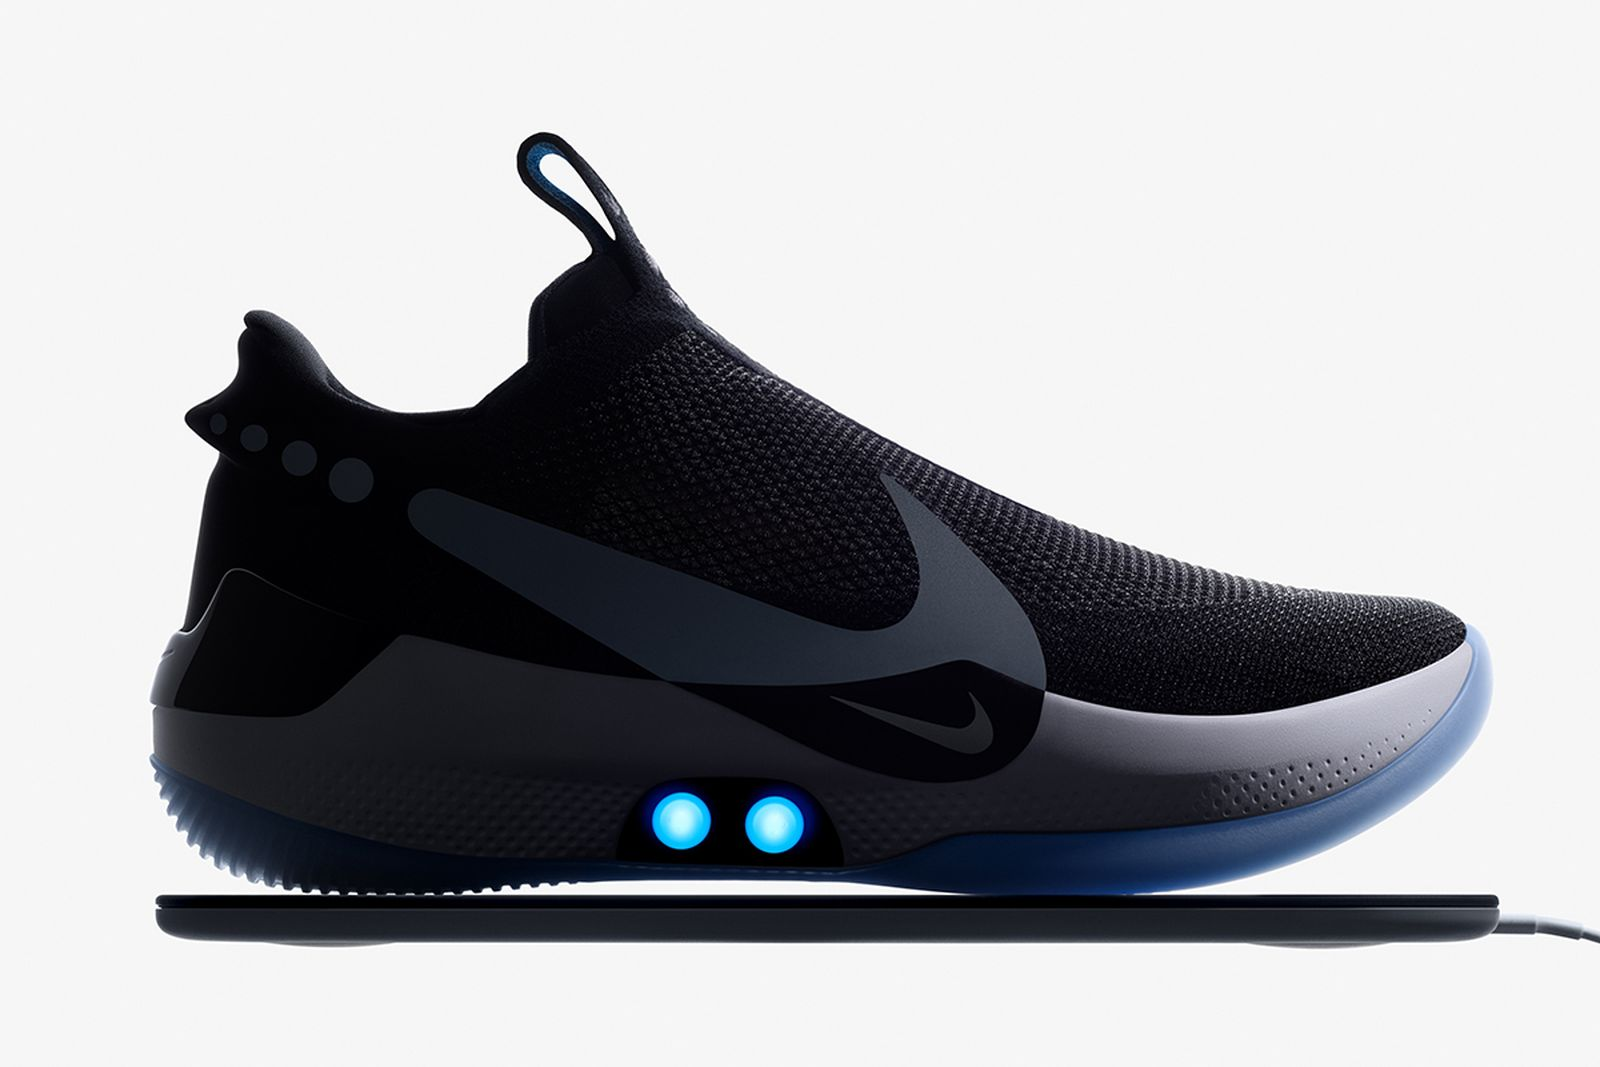 The Self Lacing Nike Adapt Bb Sneaker Drops Today